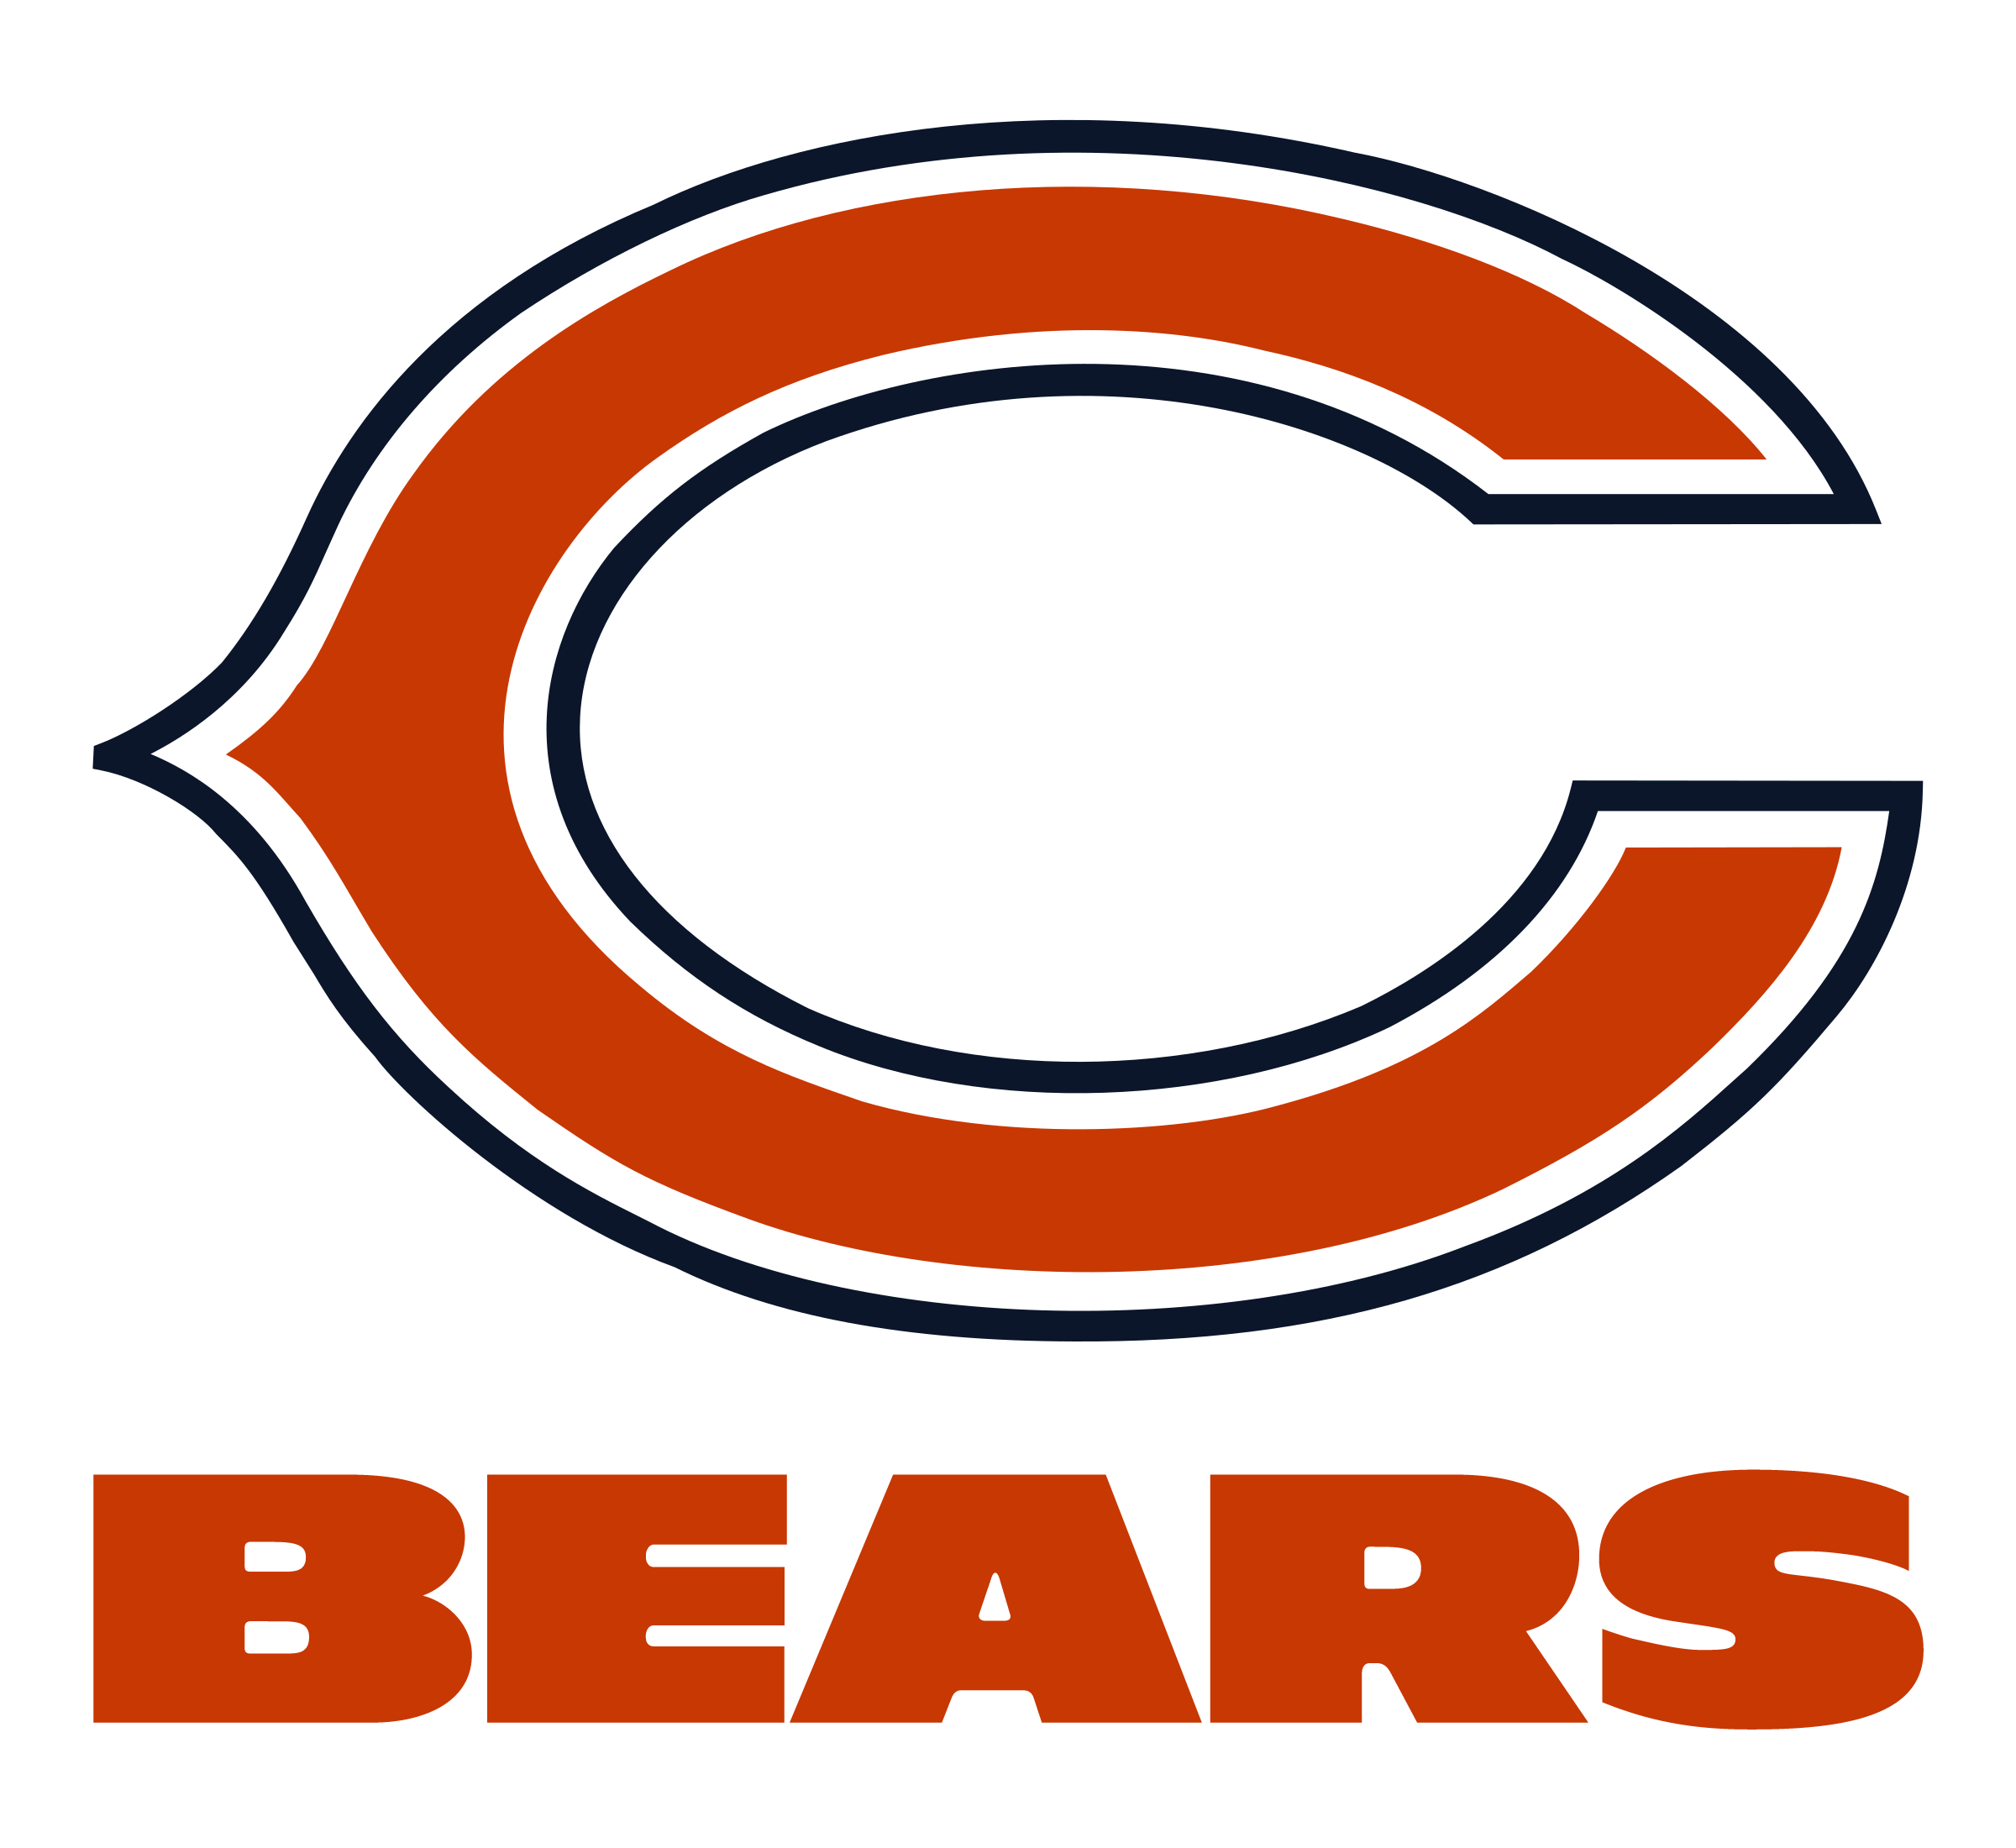 Chicago Bears Logo PNG Transparent & SVG Vector.